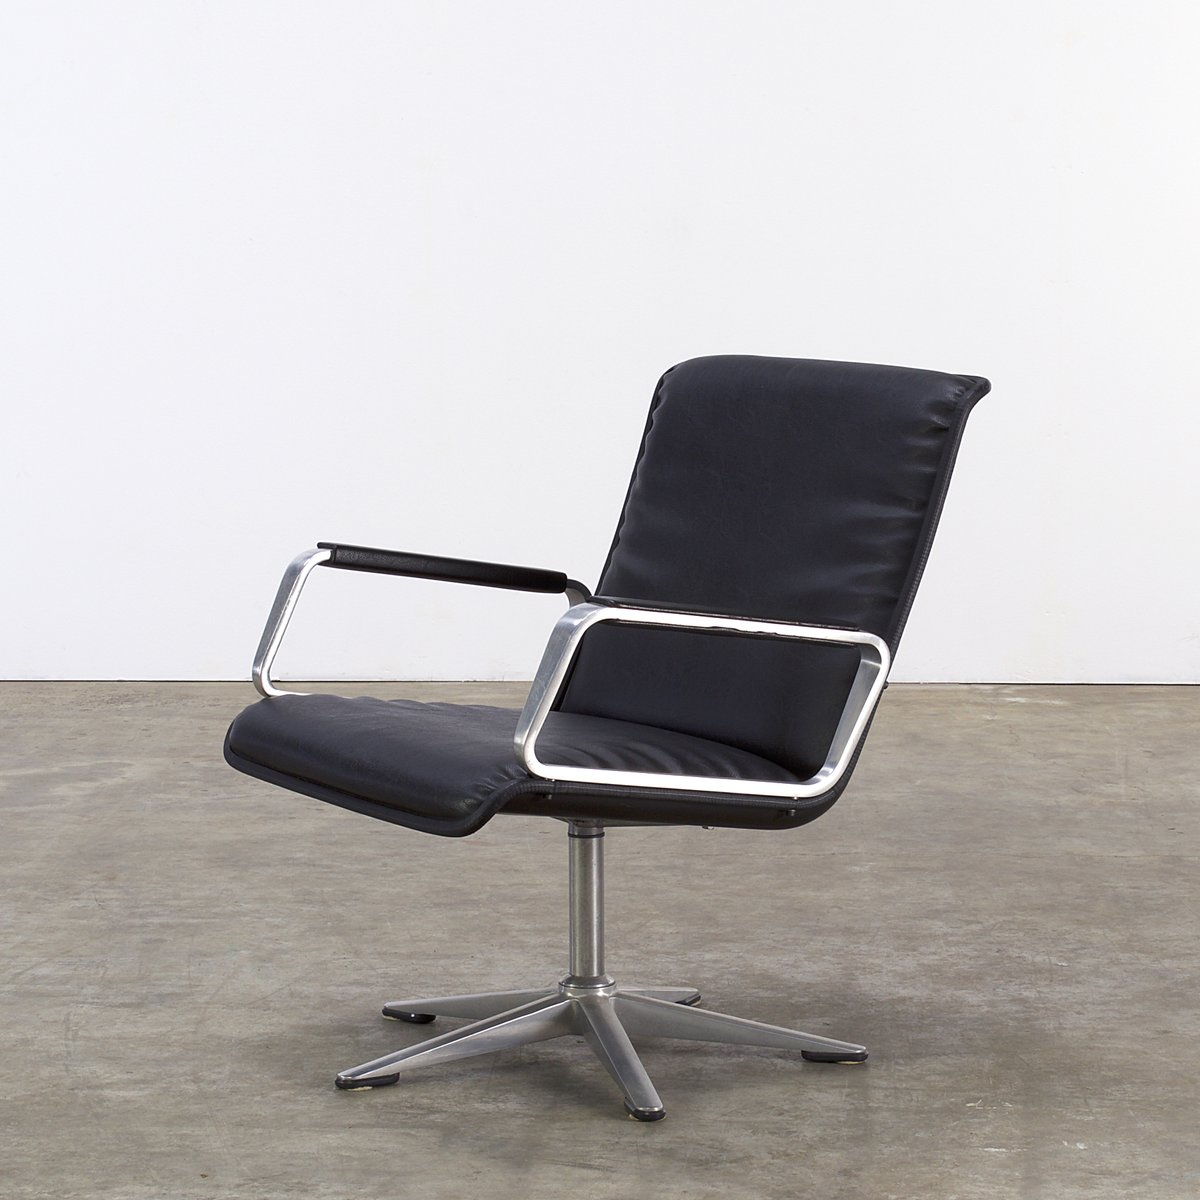 delta series office lounge chair from wilkhahn, 1970s for sale at